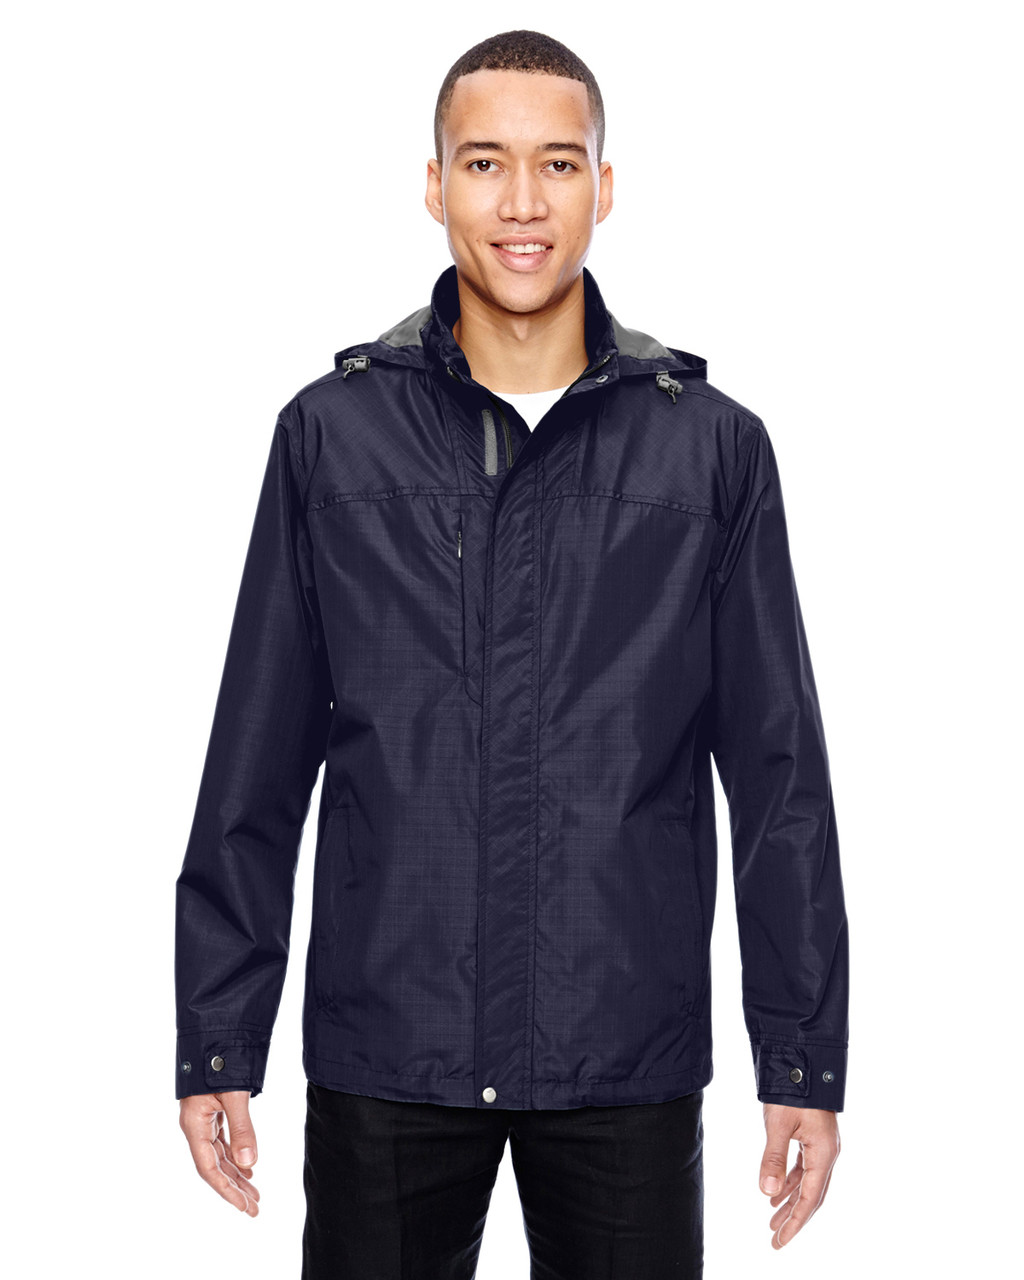 Navy - 88216 North End Excursion Transcon Lightweight Jacket with Pattern | Blankclothing.ca